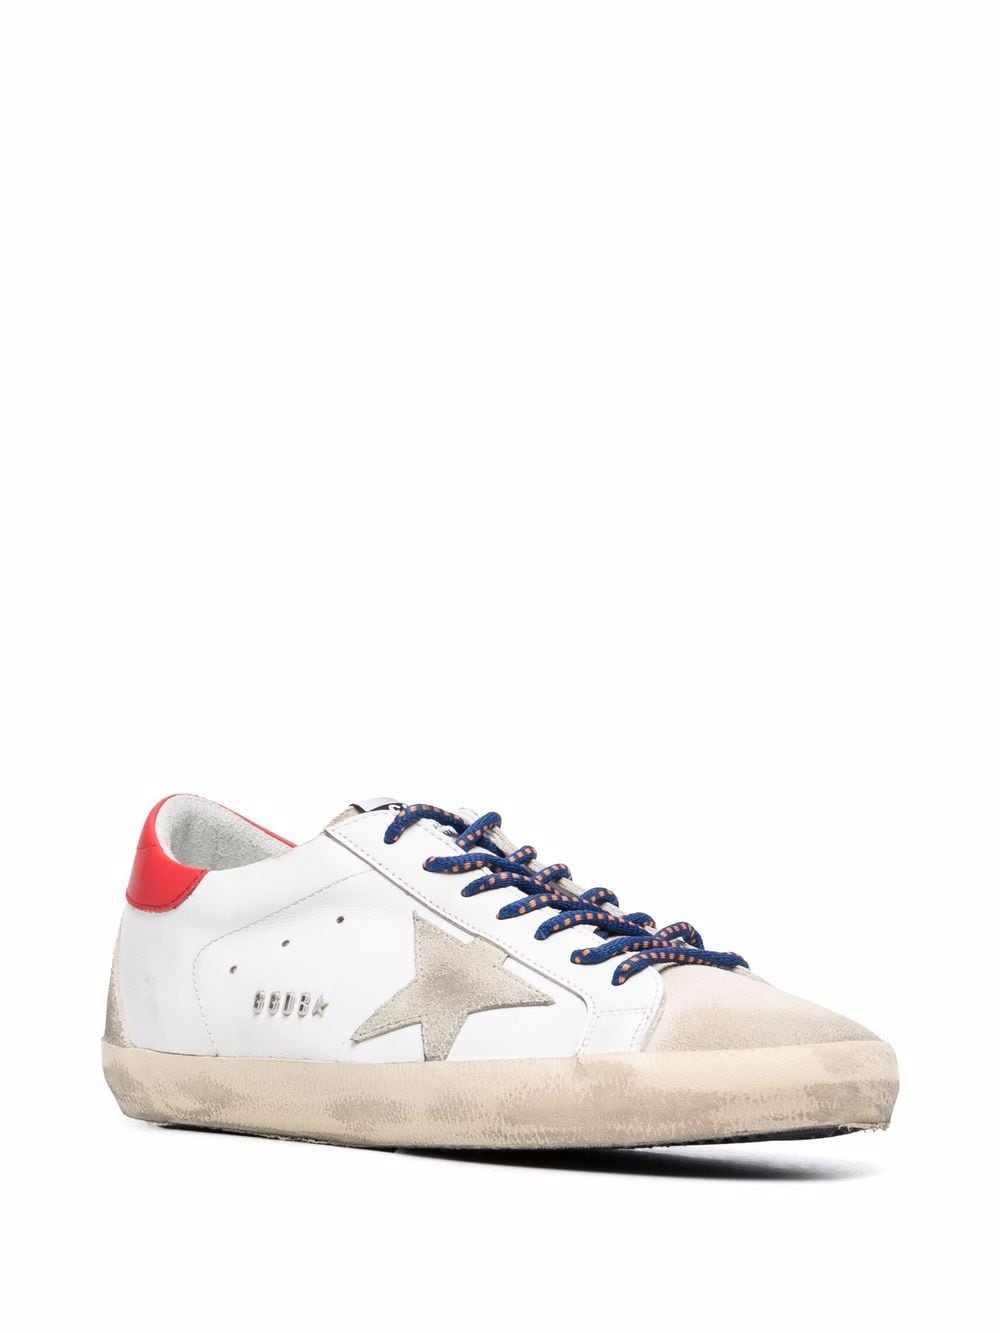 Picture of Golden Goose Deluxe Brand   Super-Star Lace-Up Sneakers